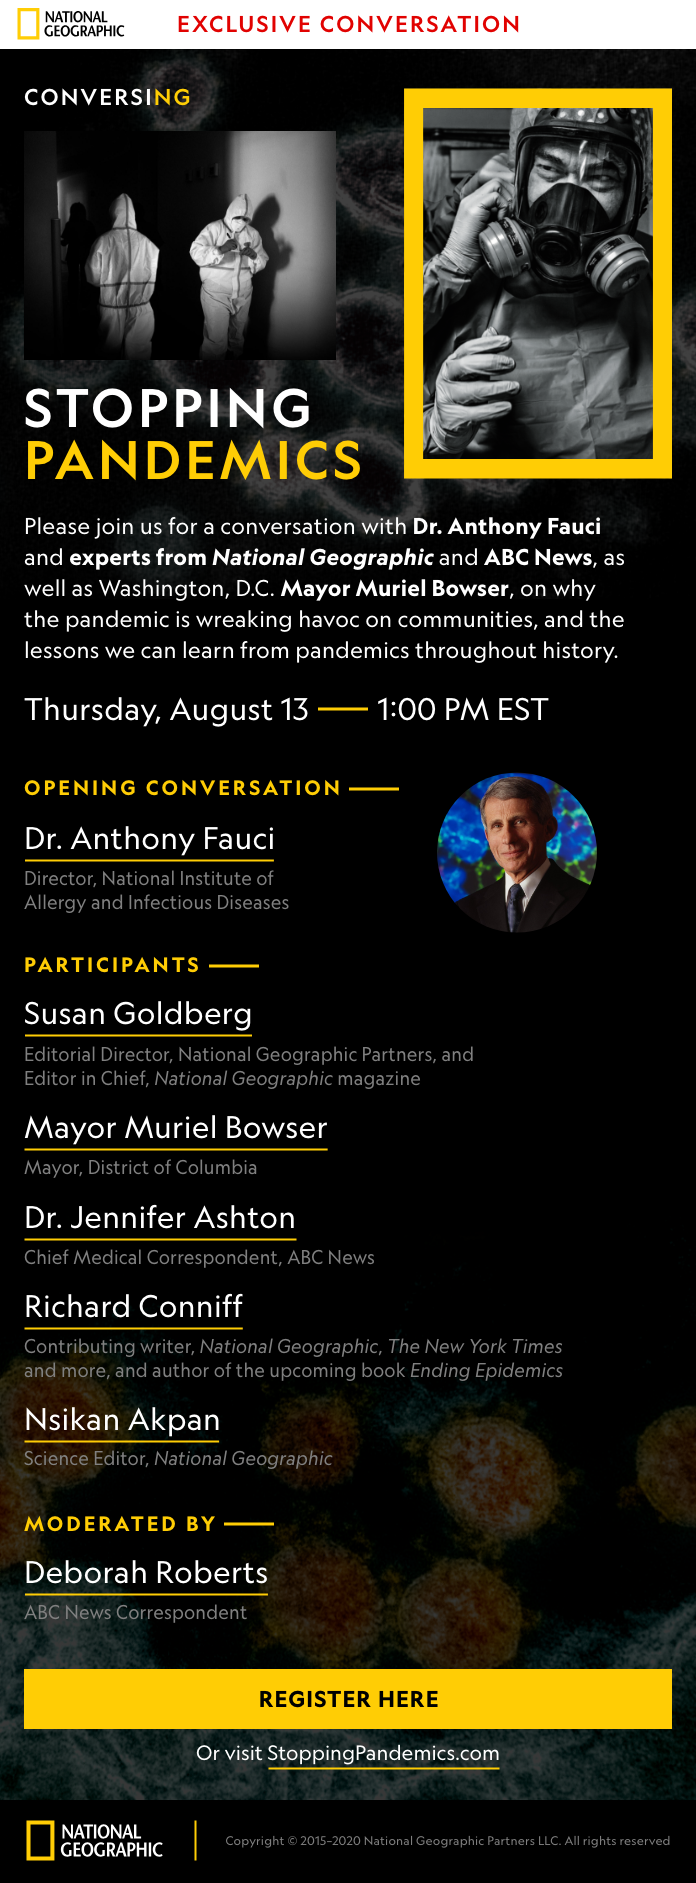 MEDIA ALERT: Exclusive Conversation with Dr. Anthony Fauci, Washington D.C. Mayor Muriel Bowser, ABC News Correspondents and National Geographic Experts